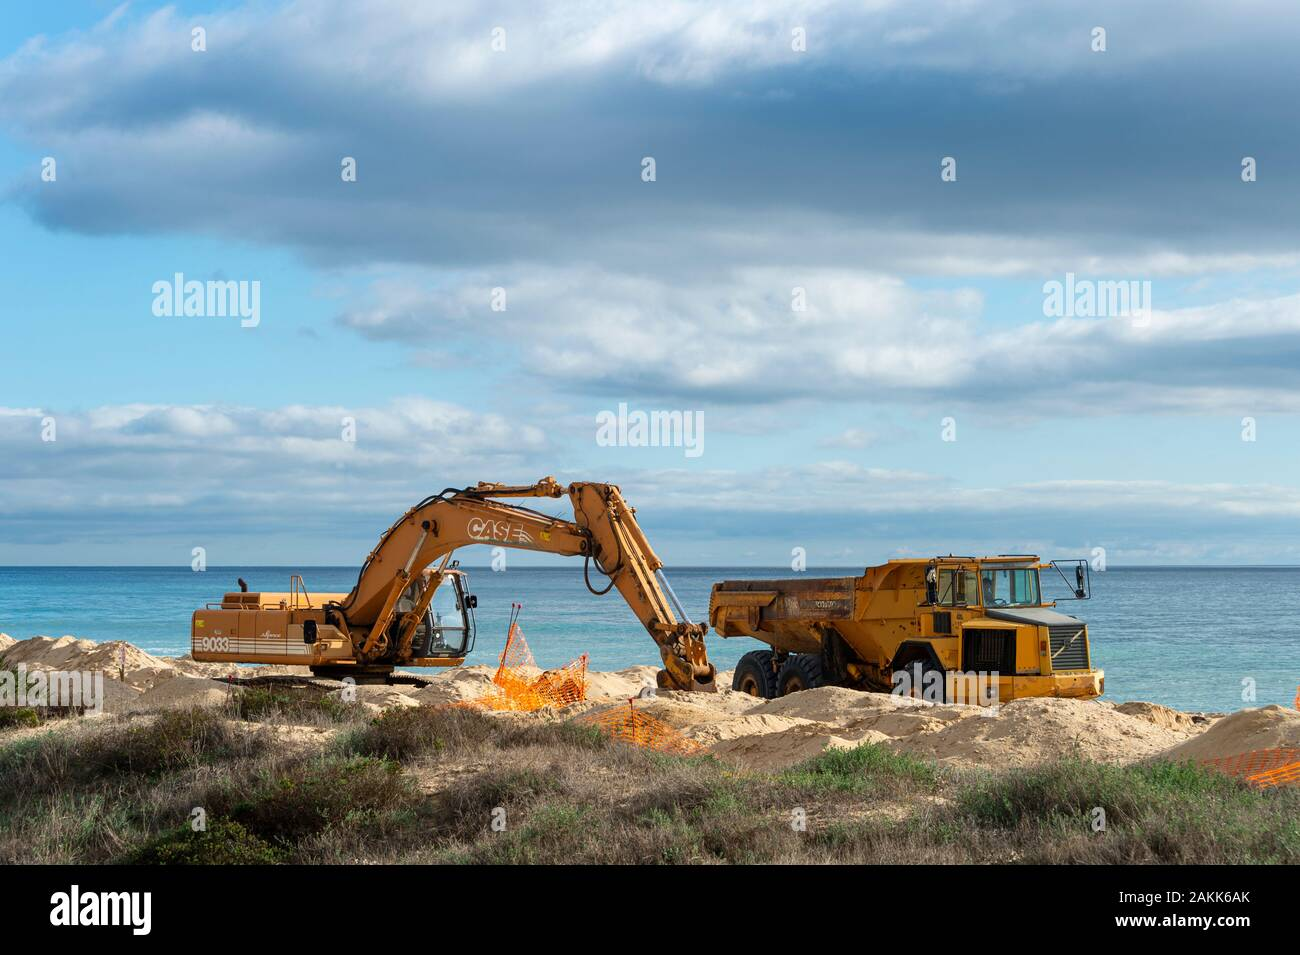 digger and truck on a beach moving sand to repair the beach due to coastal erosion. Stock Photo